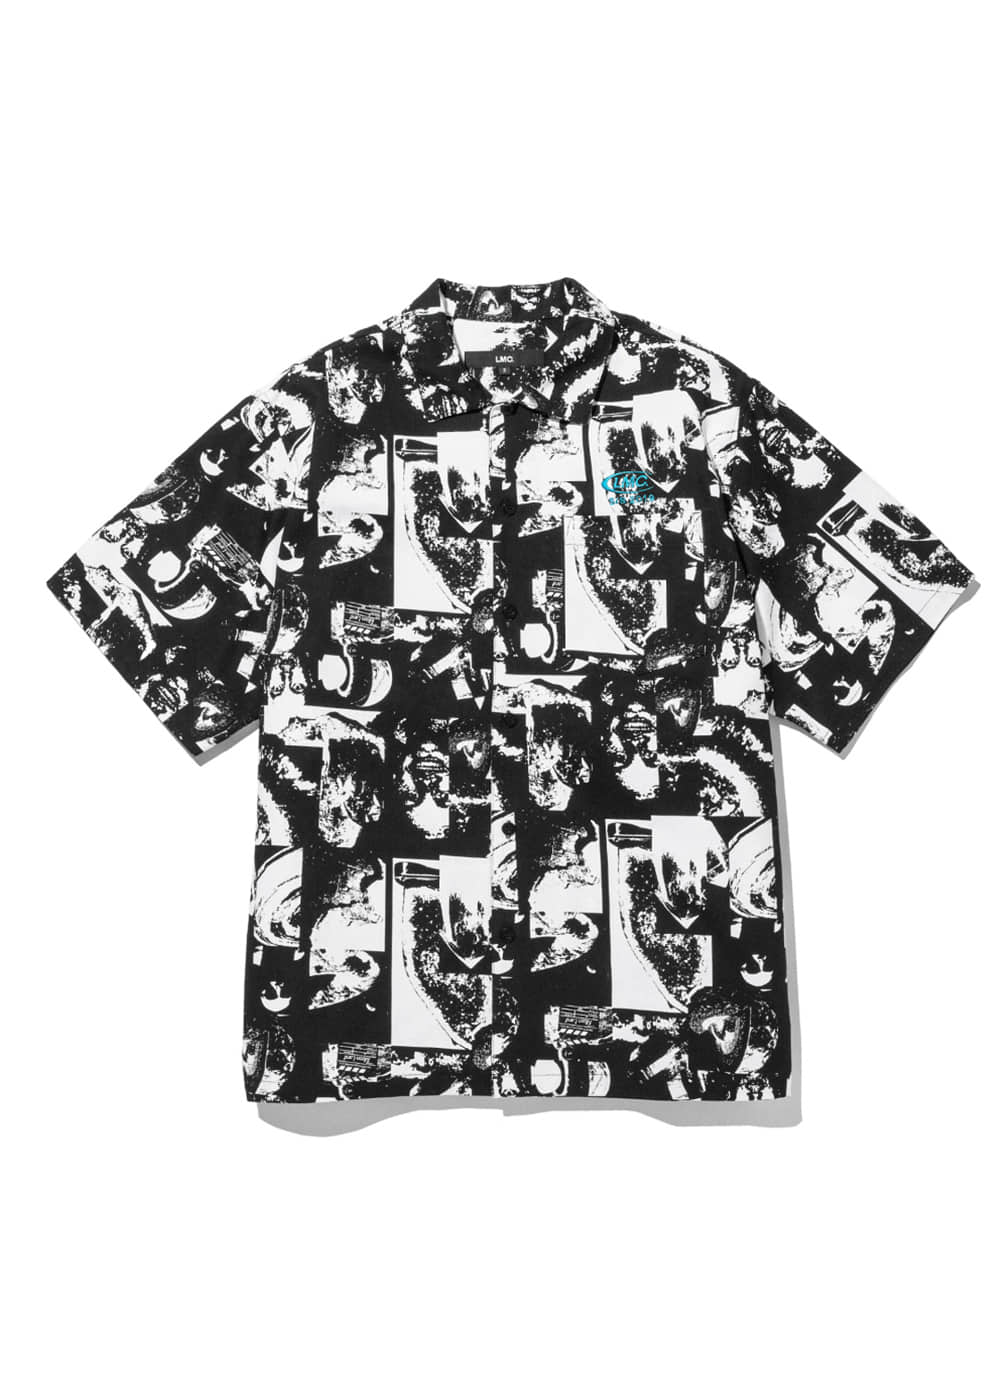 LMC SPACE CO SHORT SLV SHIRT black